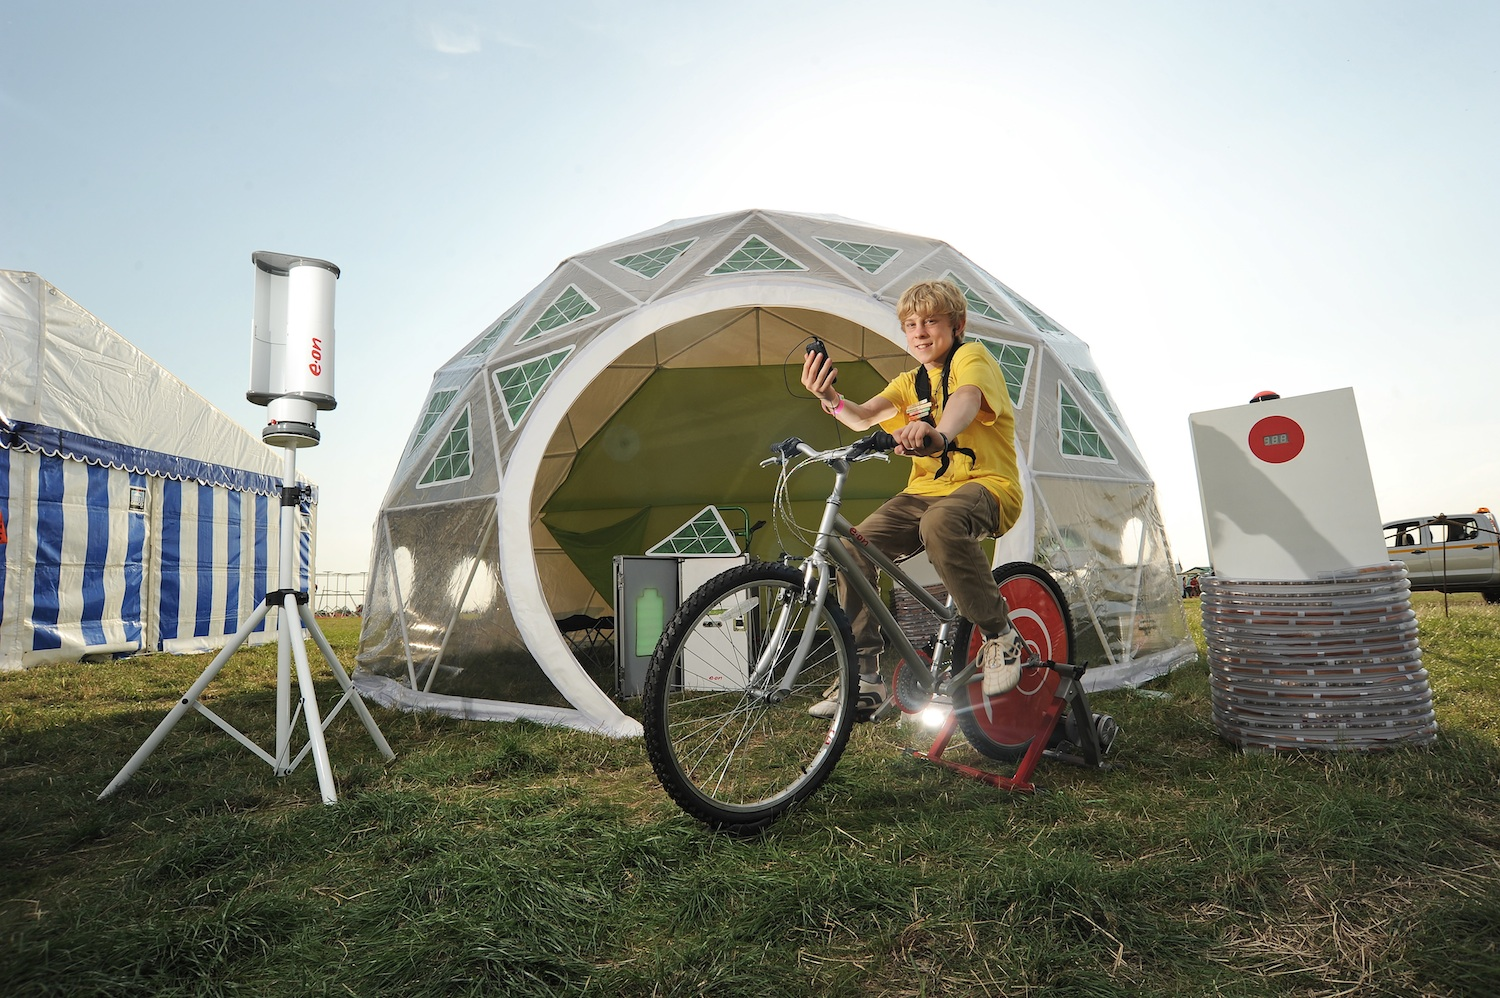 It was also filled with all kinds of high tech c&ing gear with a general theme of heat and power efficiency. We had great fun sourcing the gear and ... & gusto design blog: Gusto creates u0027Tent of the Futureu0027 for E.ON